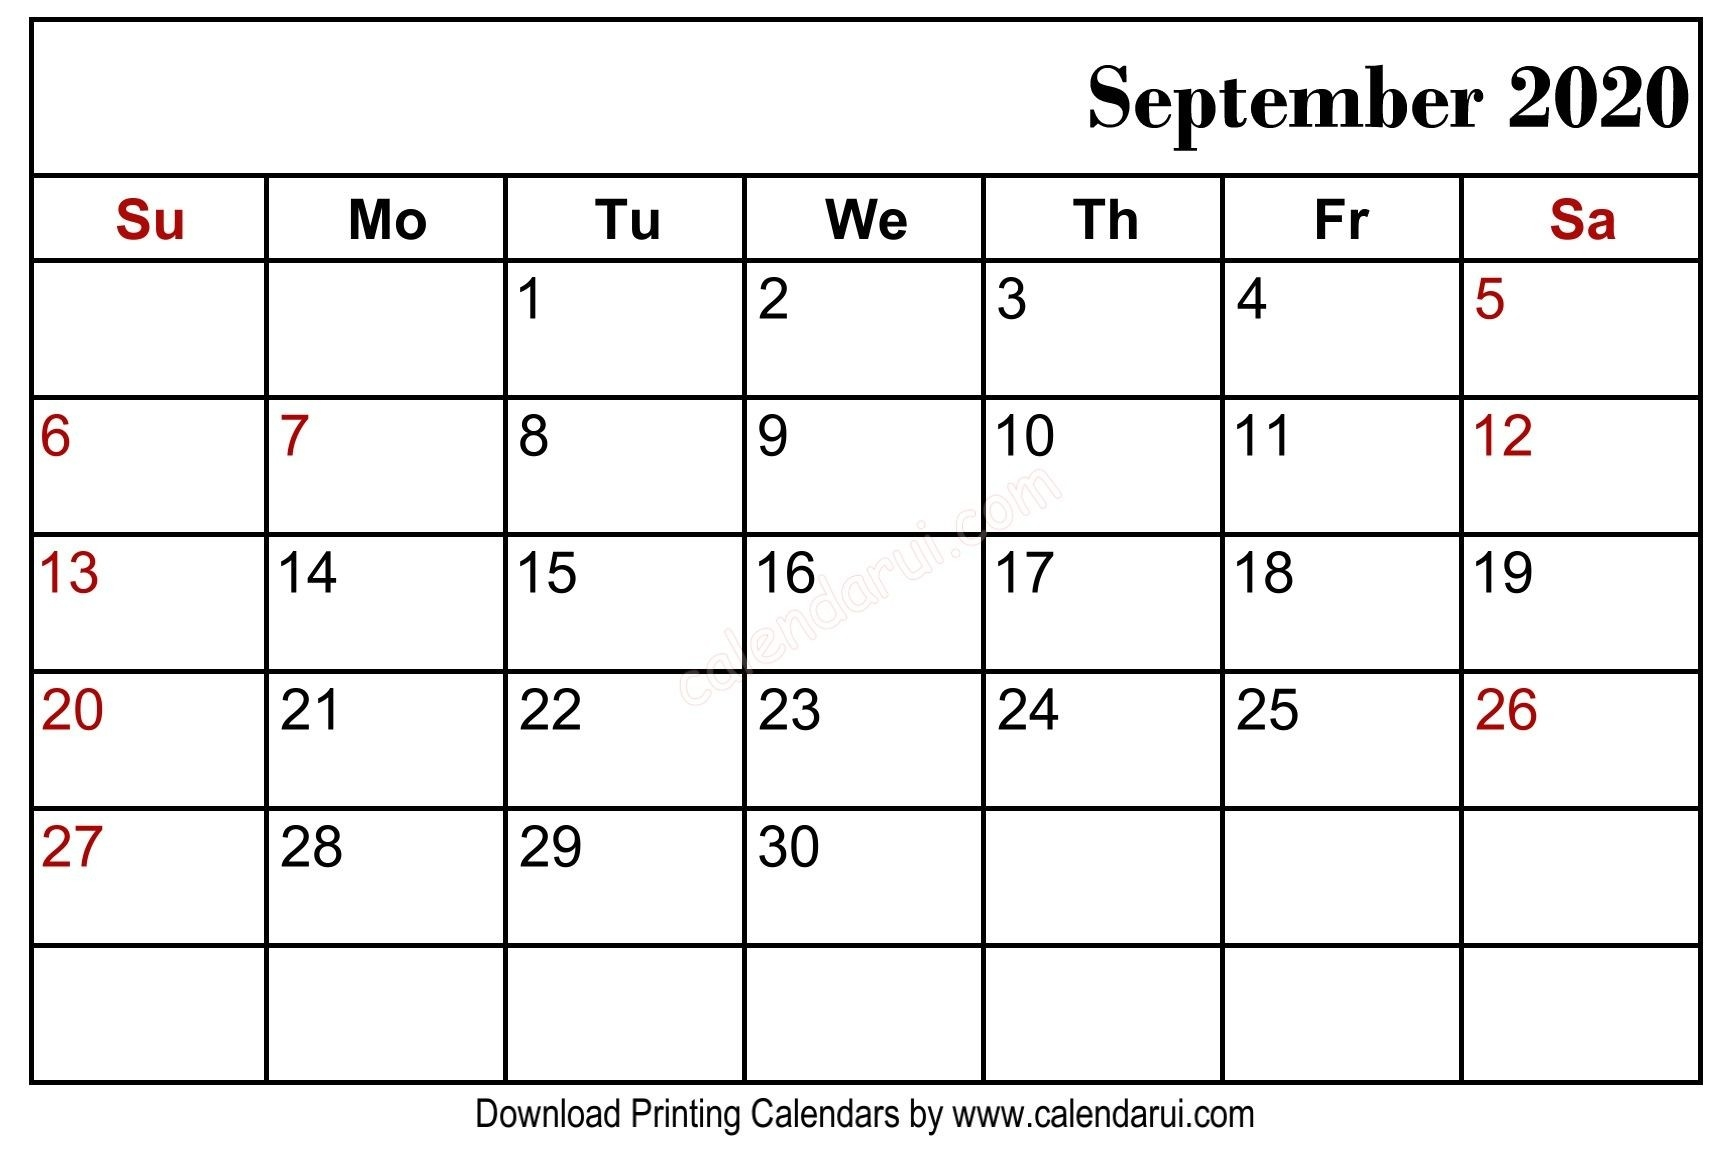 September 2020 Blank Calendar Printable Free Download  Full Page September 2020 Calender Page